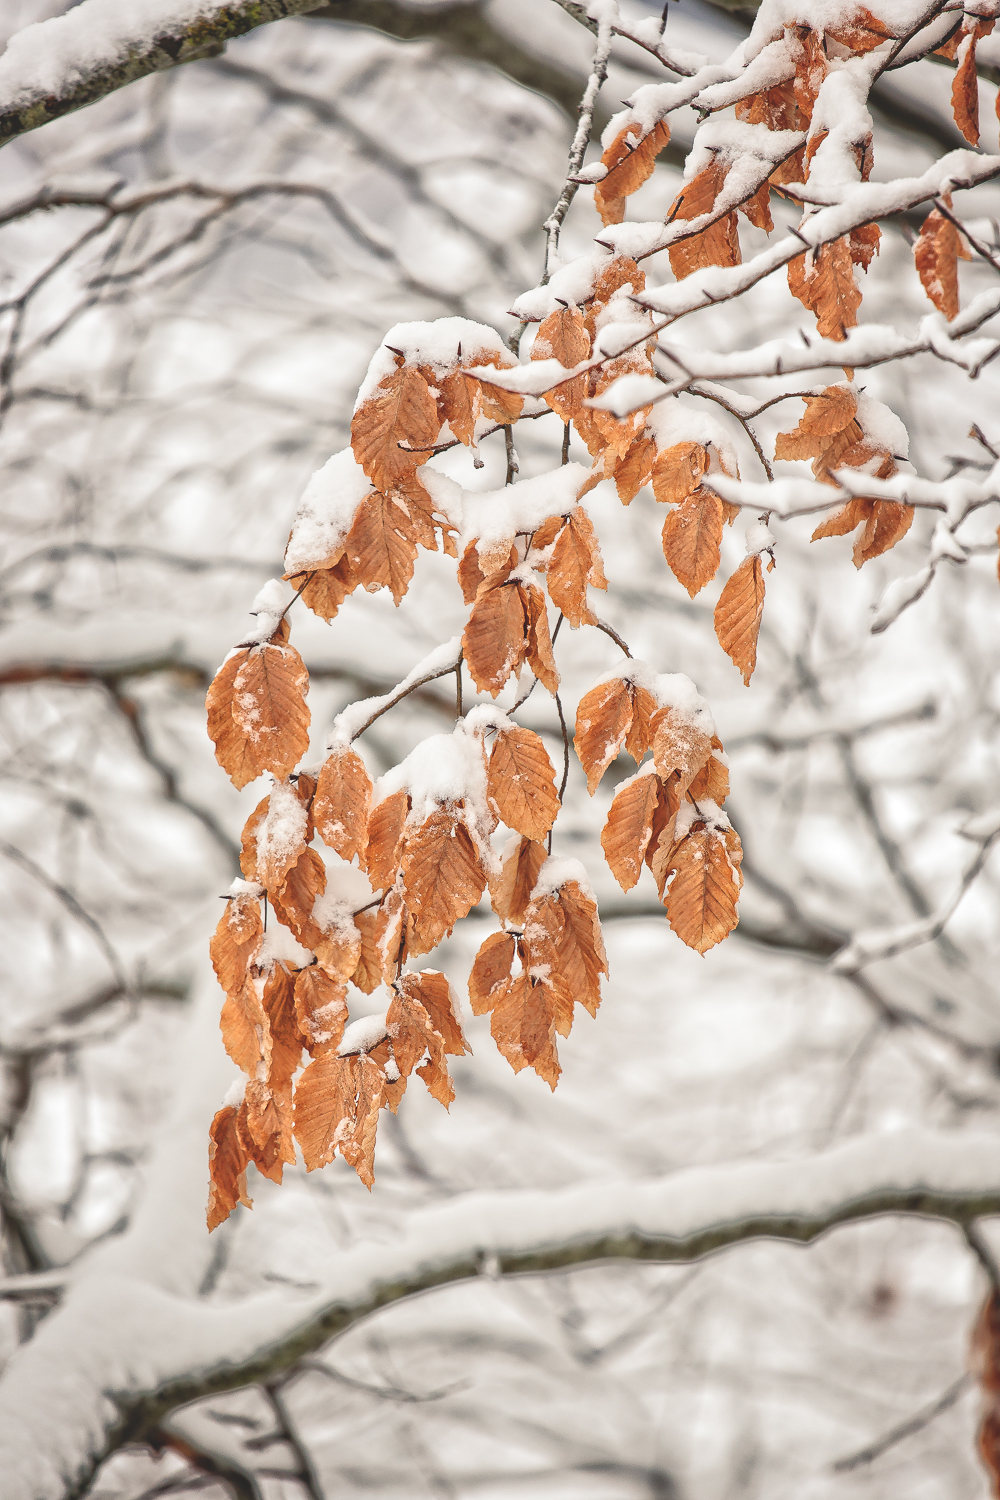 Fall leaves covered in snow